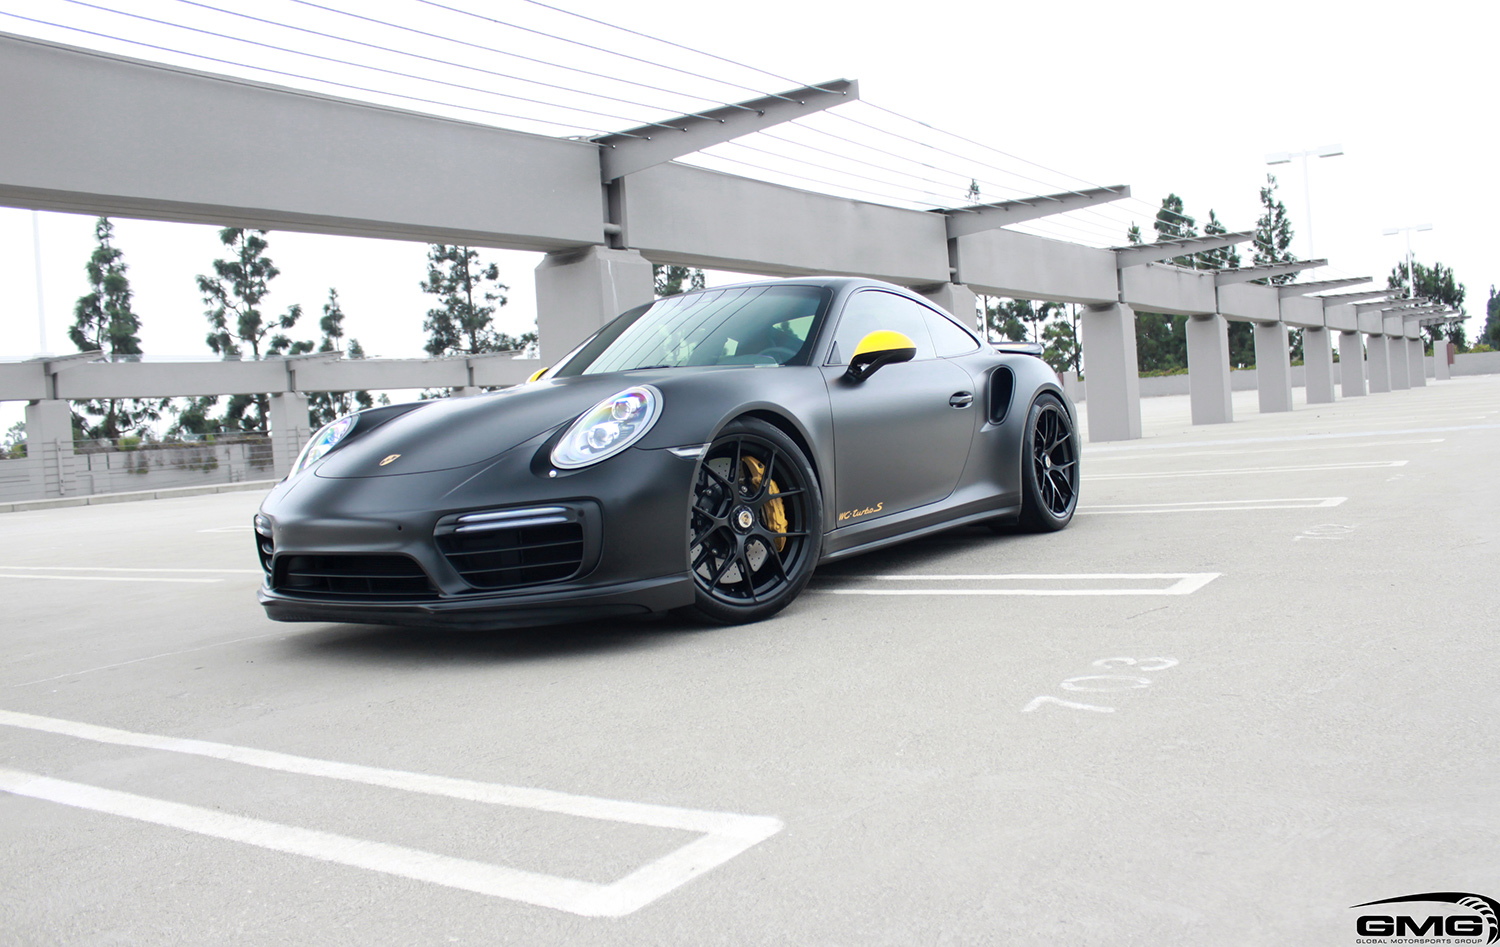 991.2 Turbo S (Stealth Mode)